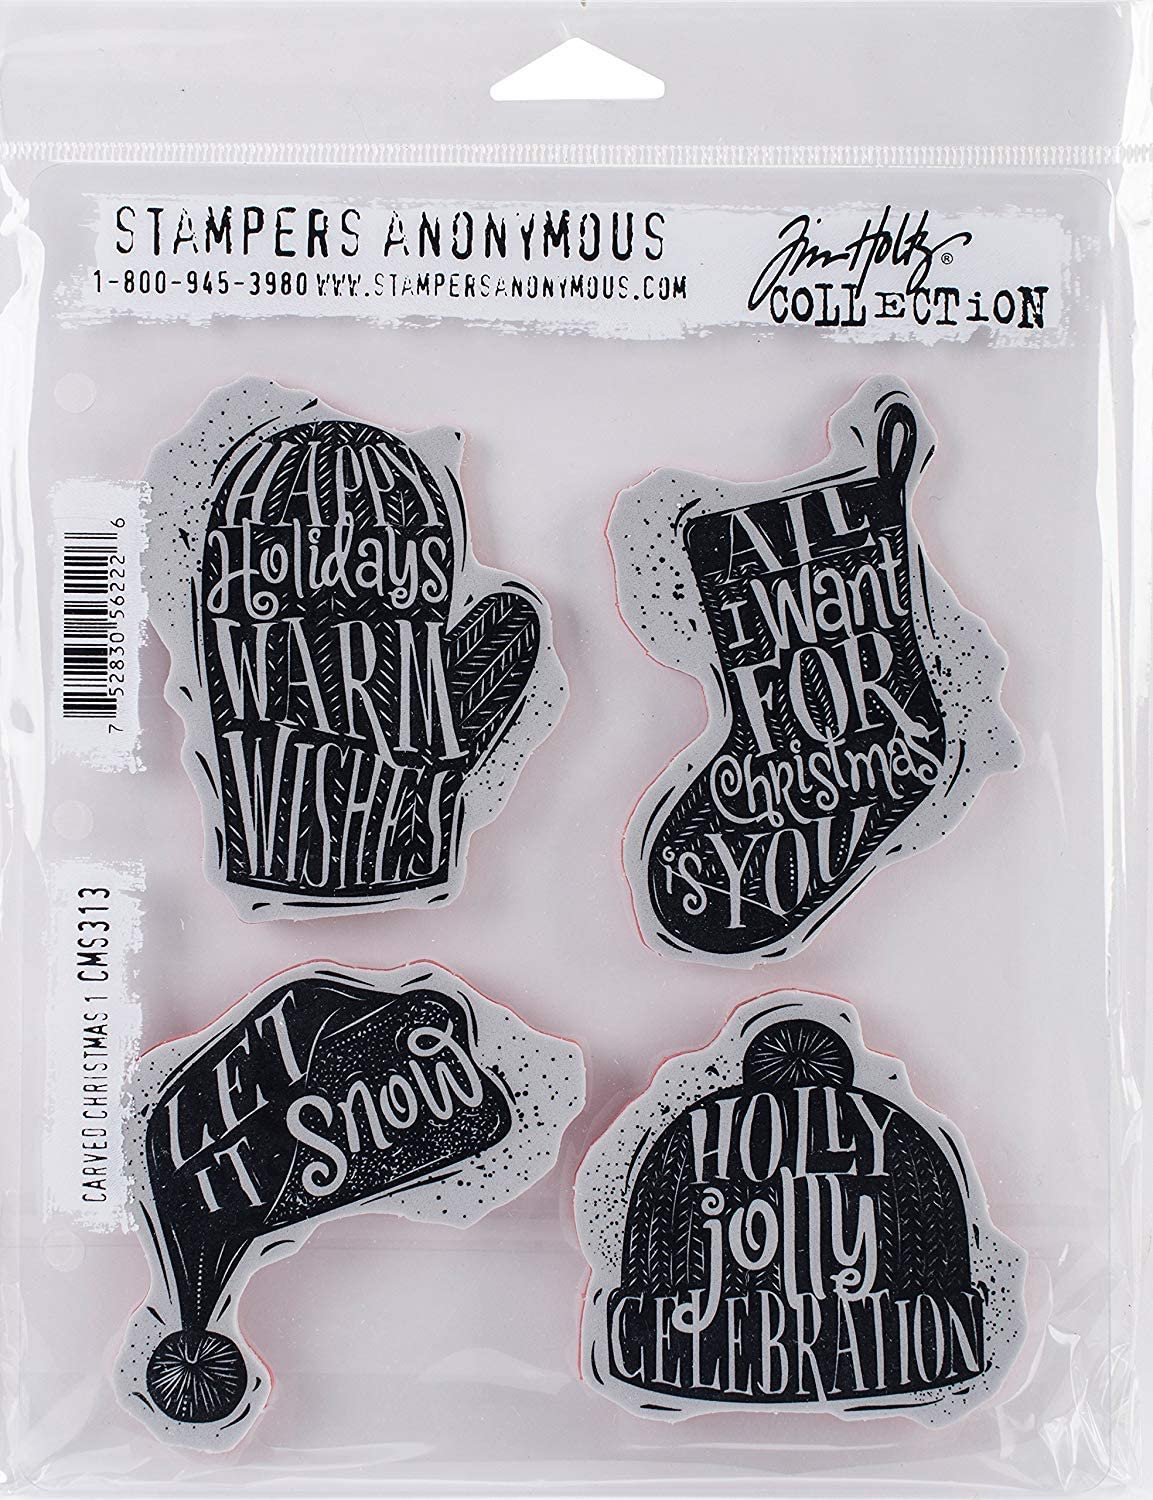 Inch 7 by 8.5 Carved Instruments Stampers Anonymous Tim Holtz Cling Rubber Stamp Set